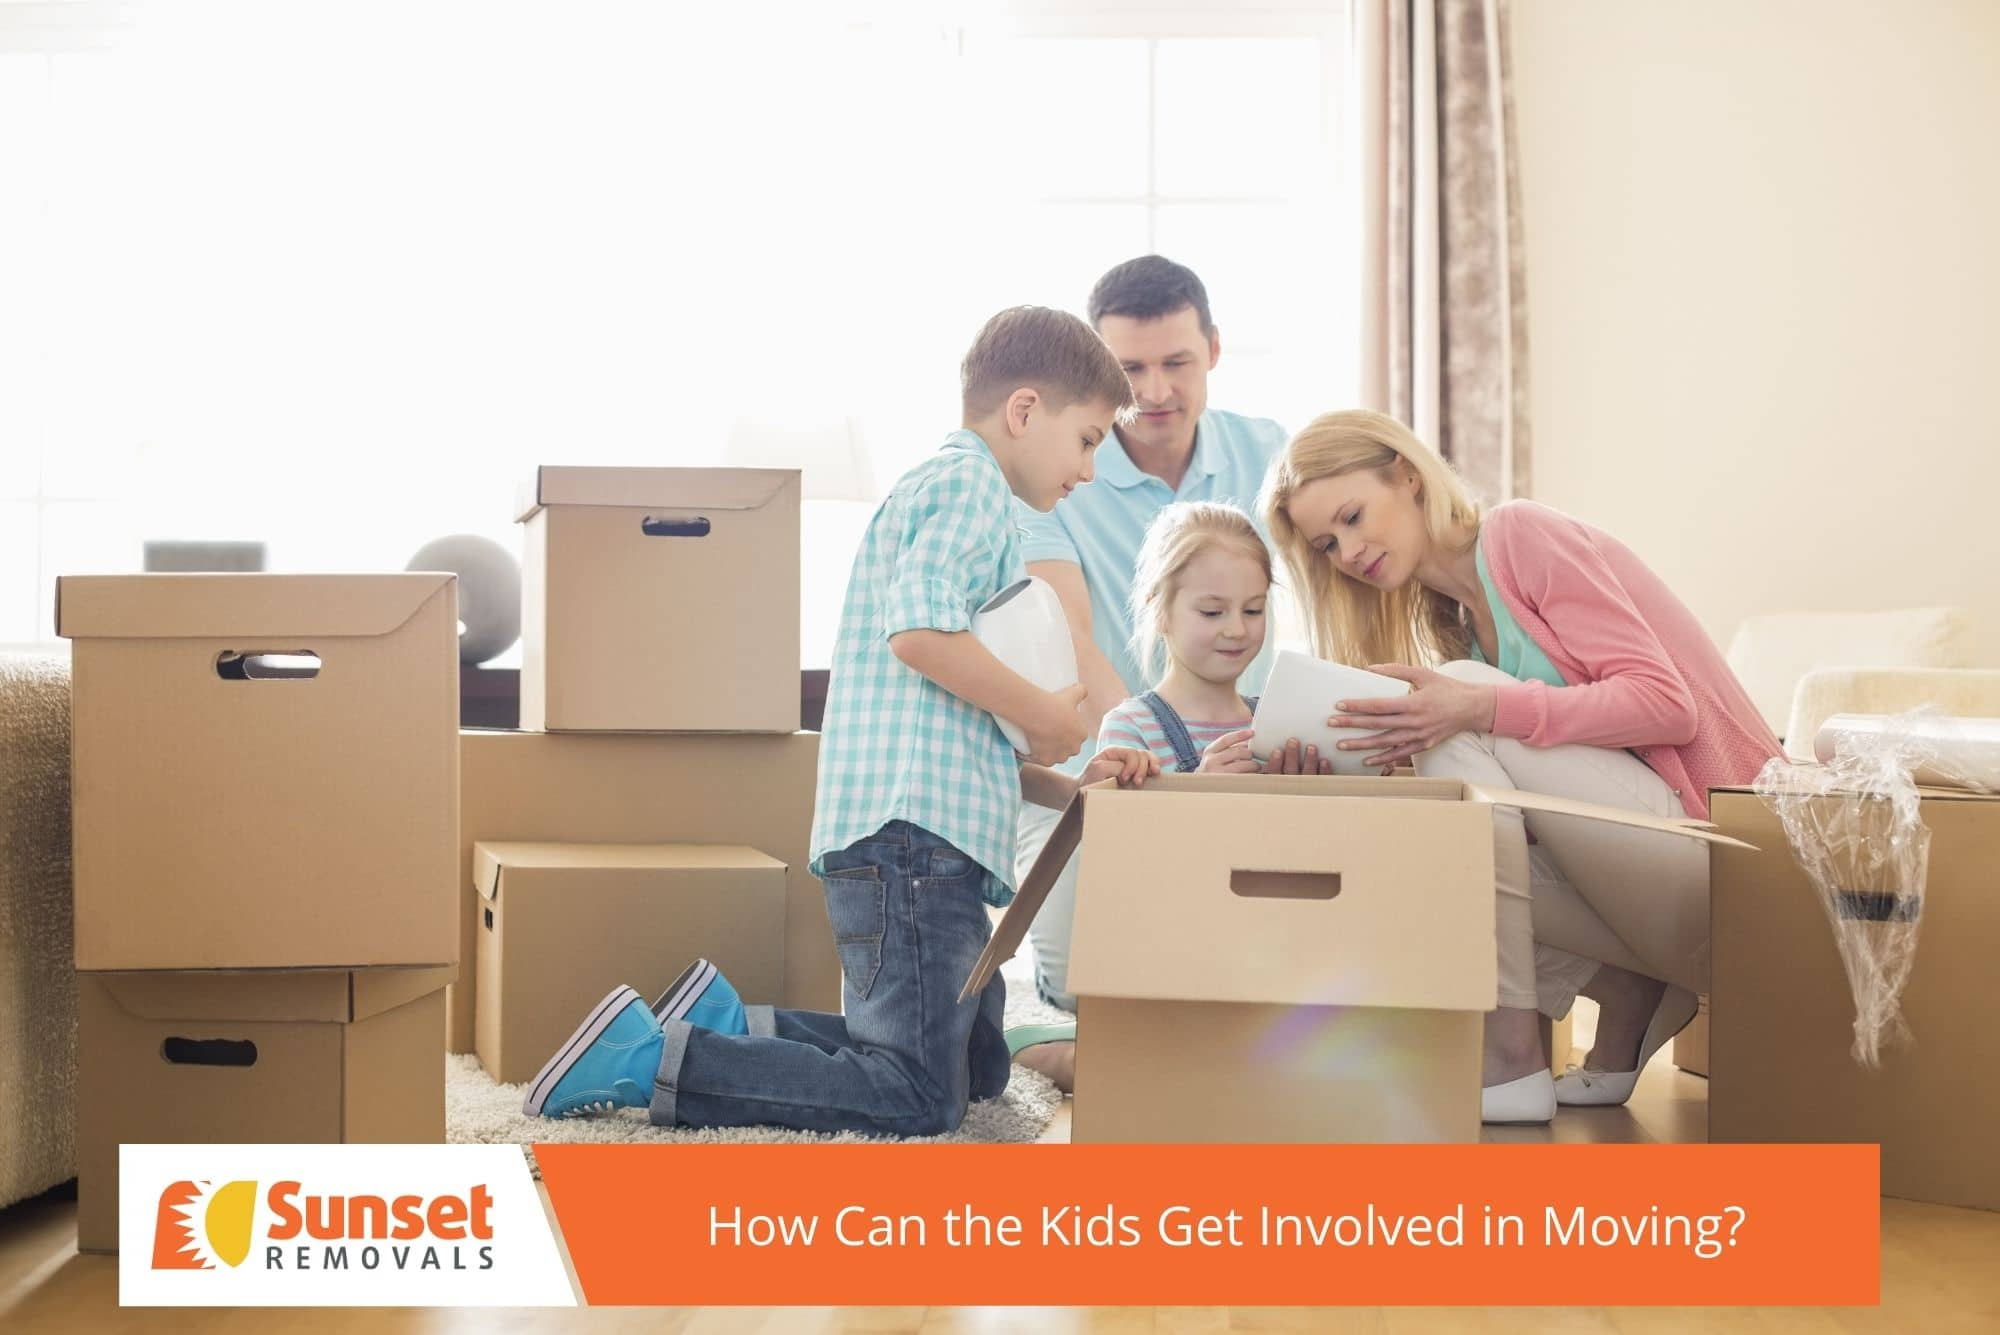 How Can the Kids Get Involved in Moving?